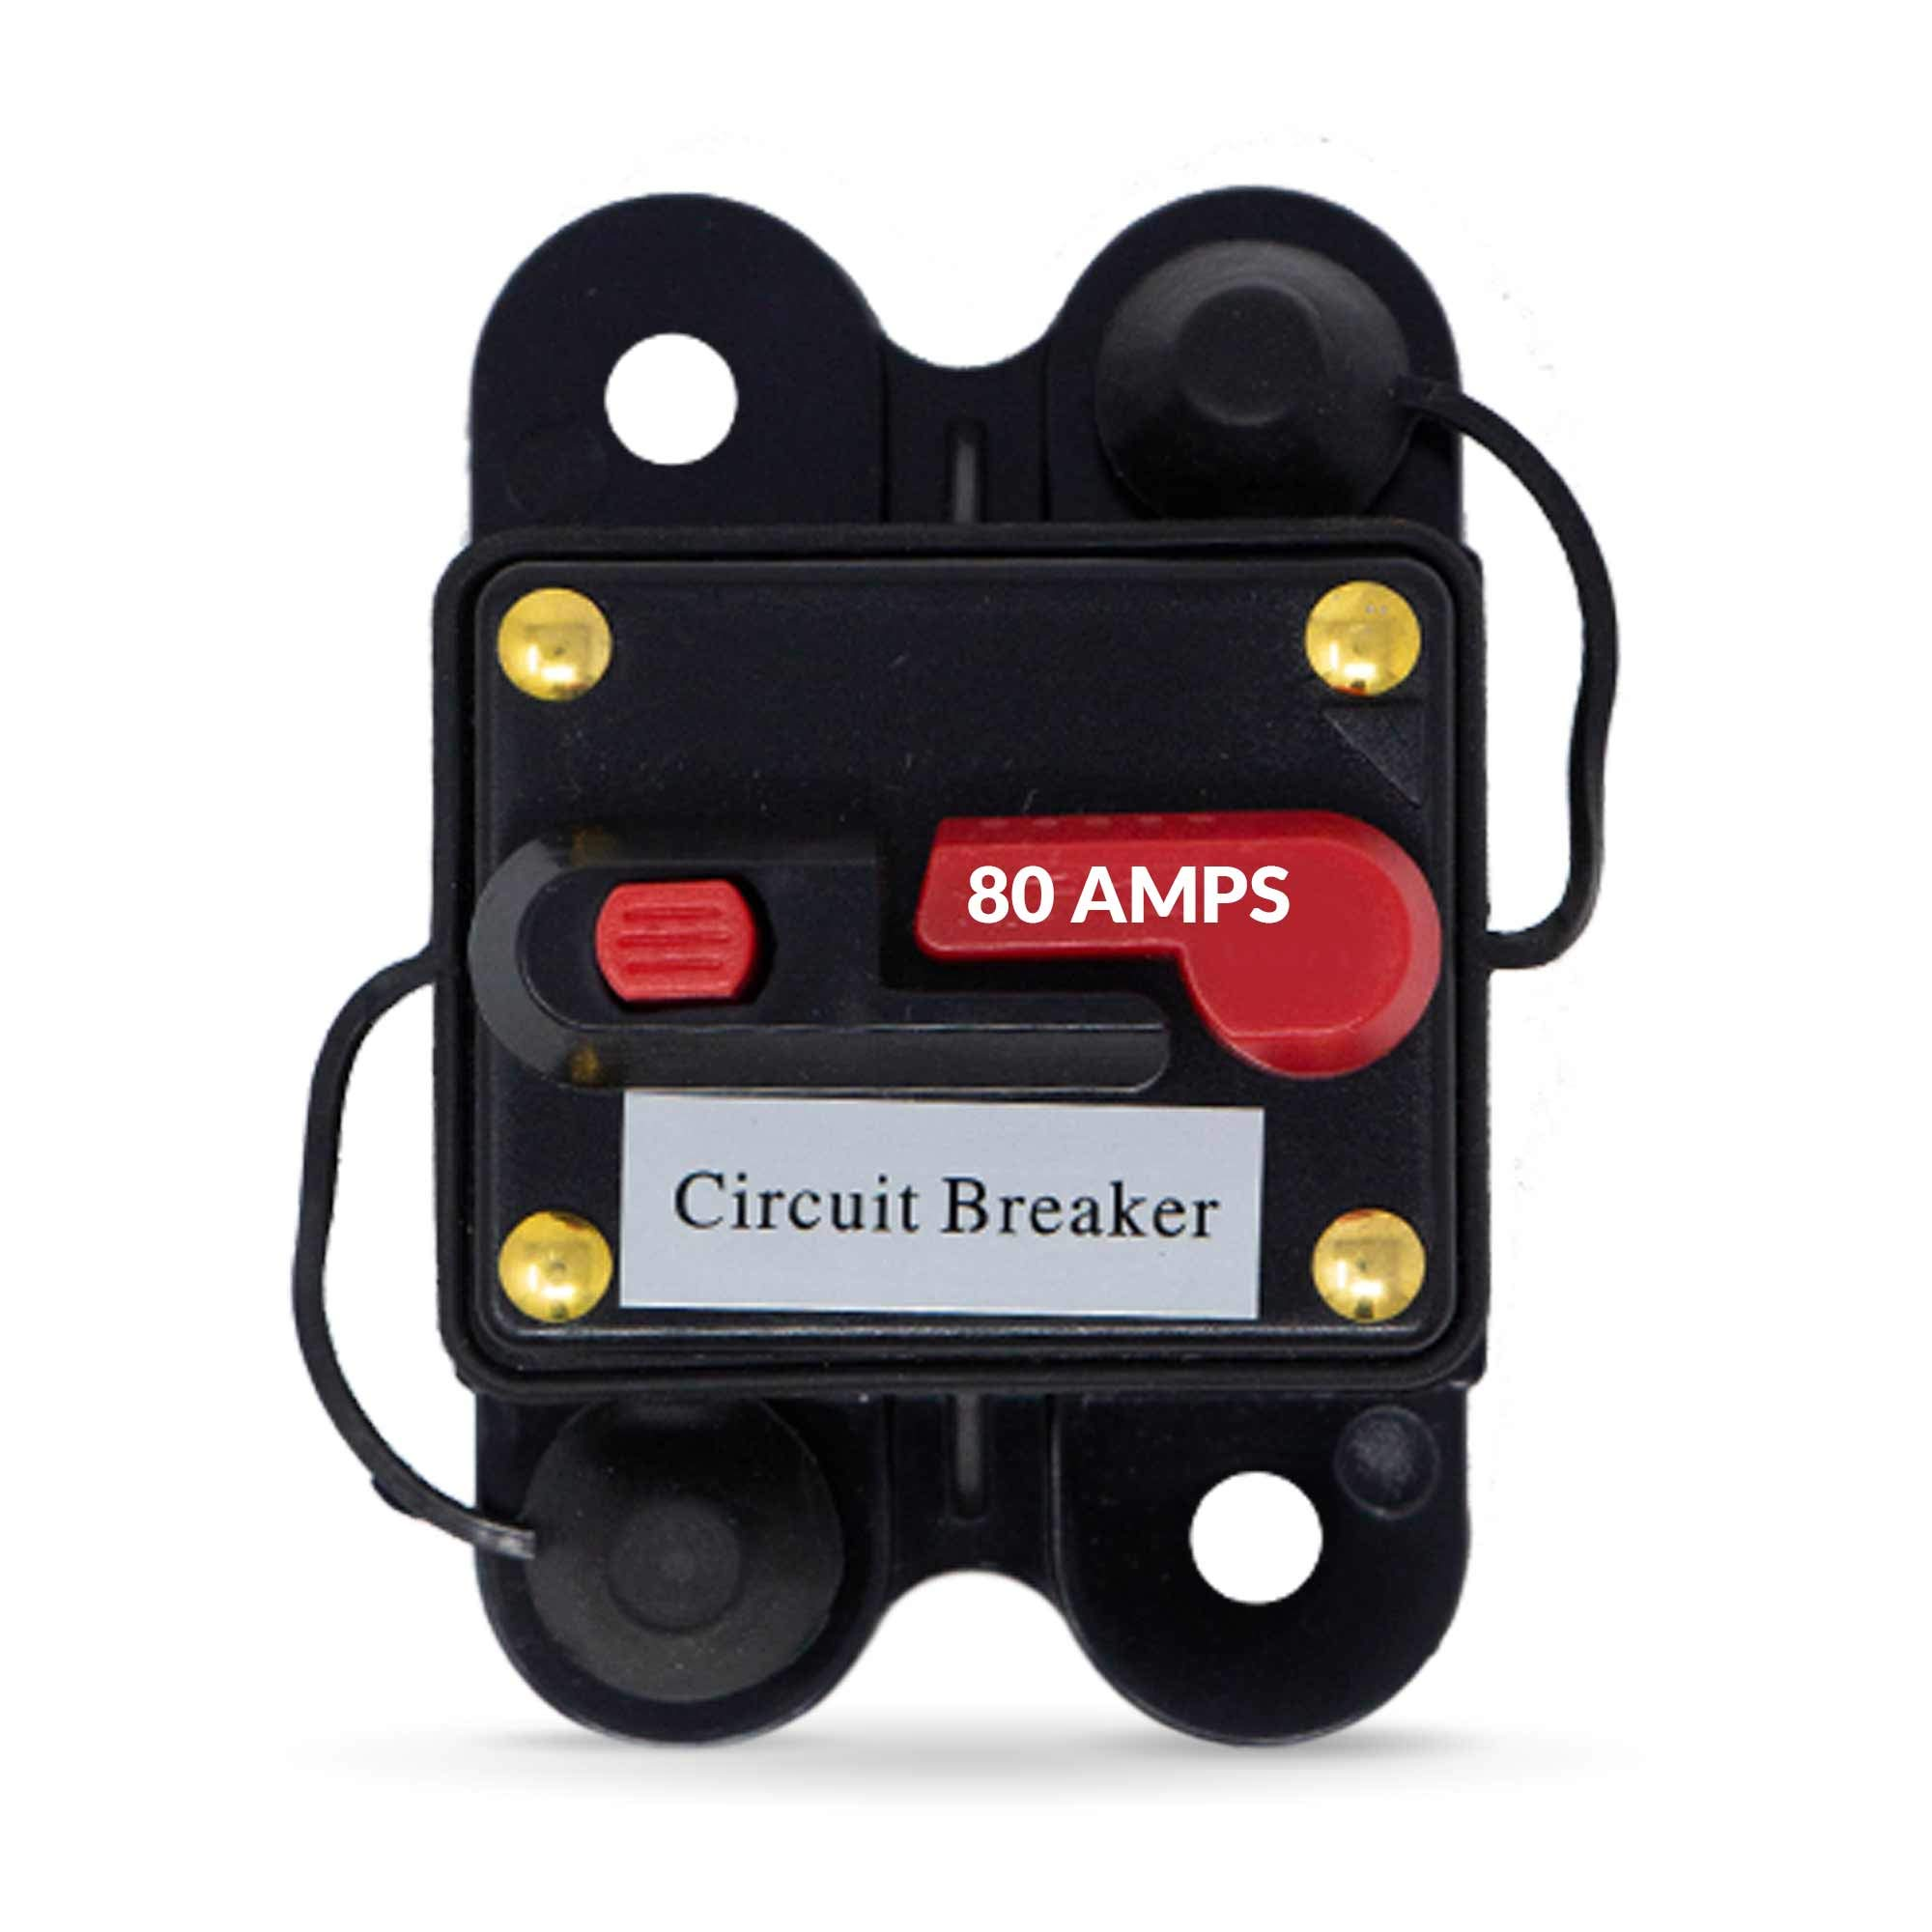 Five Oceans 80 Amp Anchor Windlass Circuit Breaker w/Manual Reset Button, 12V FO-3294 by Five Oceans